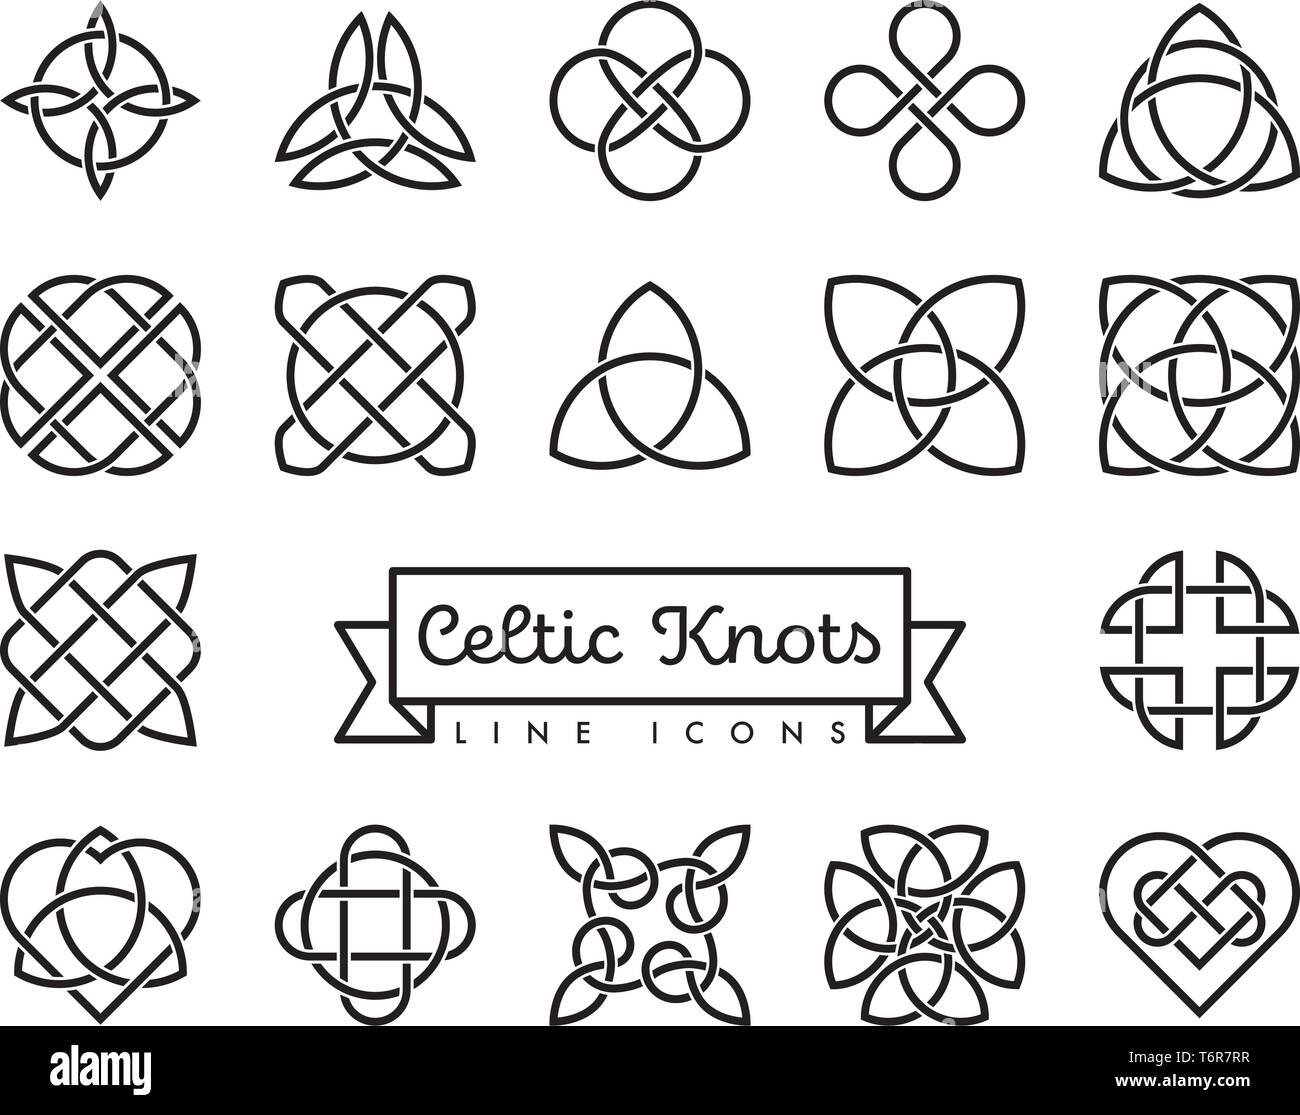 Collection of traditional celtic knots line icons vector illustration. Spirituality, religion and occultism symbols. - Stock Vector